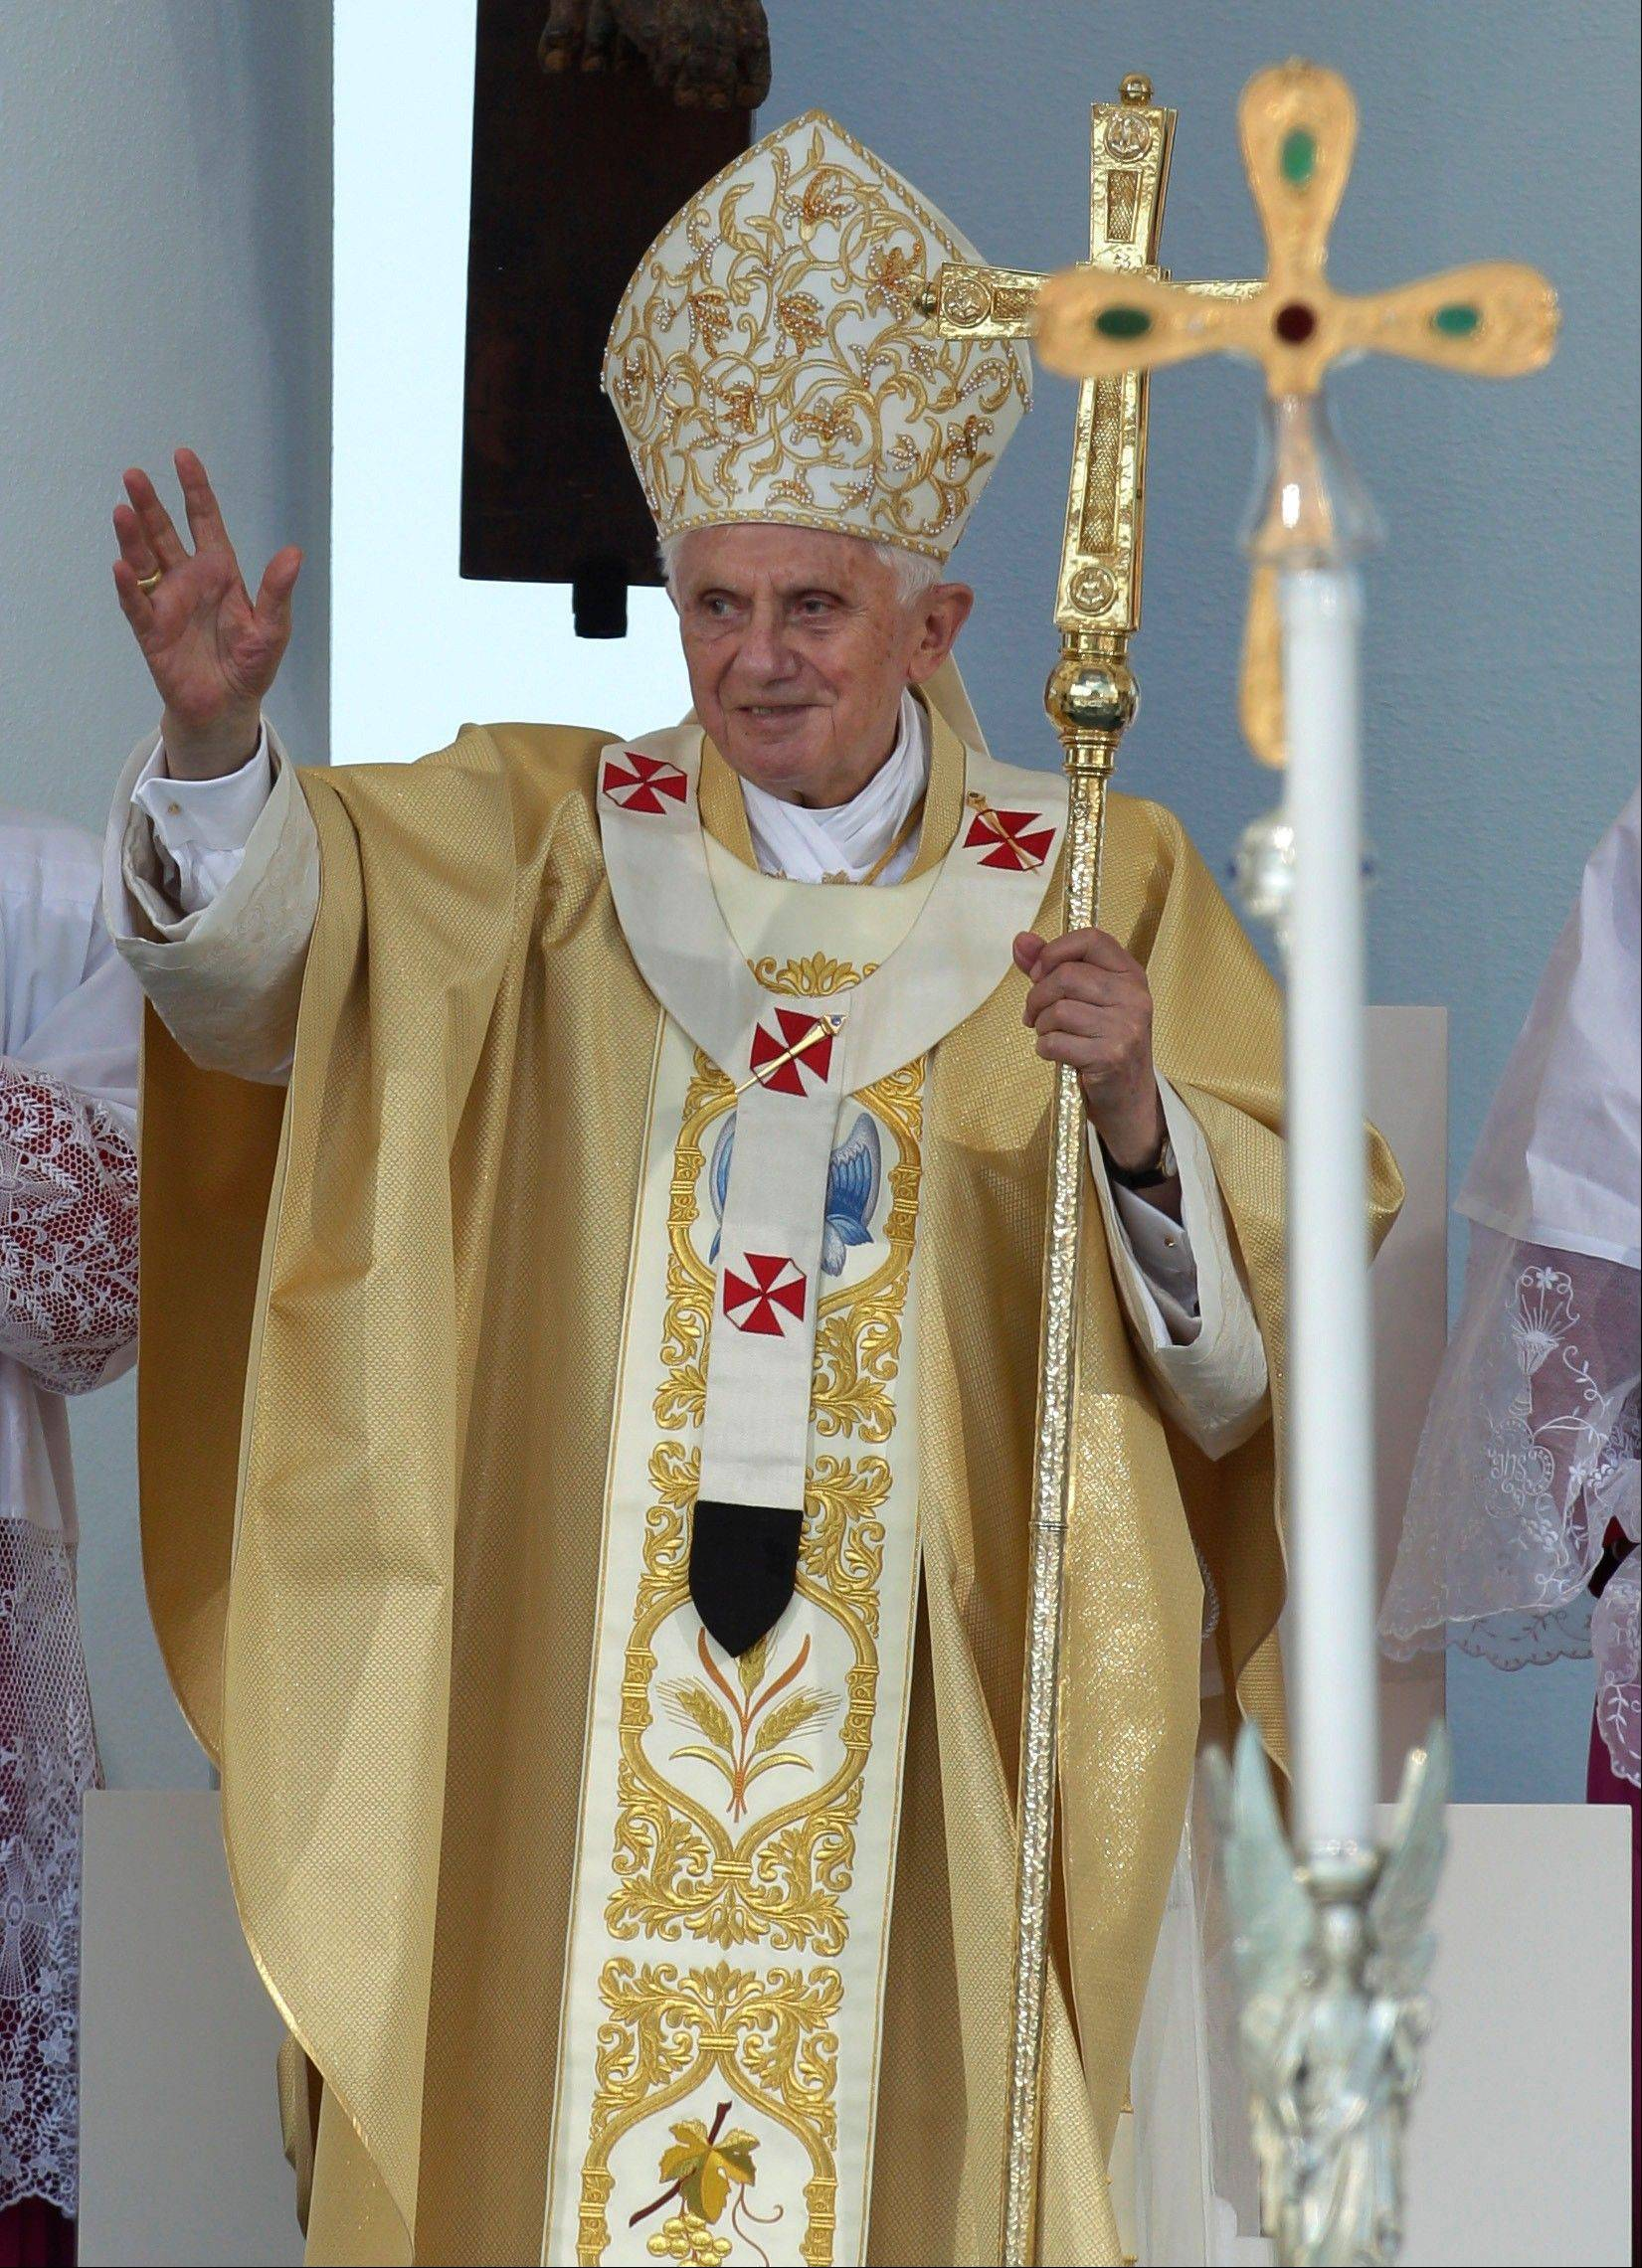 "Pope Benedict XVI prayed for the victims of the Sept. 11 terror attacks and called on world leaders and others to resist what he calls the ""temptation toward hatred."" The Vatican also has told a breakaway traditional Catholic group that its members must accept some core church teachings if they want to be brought back into the Roman Catholic fold."